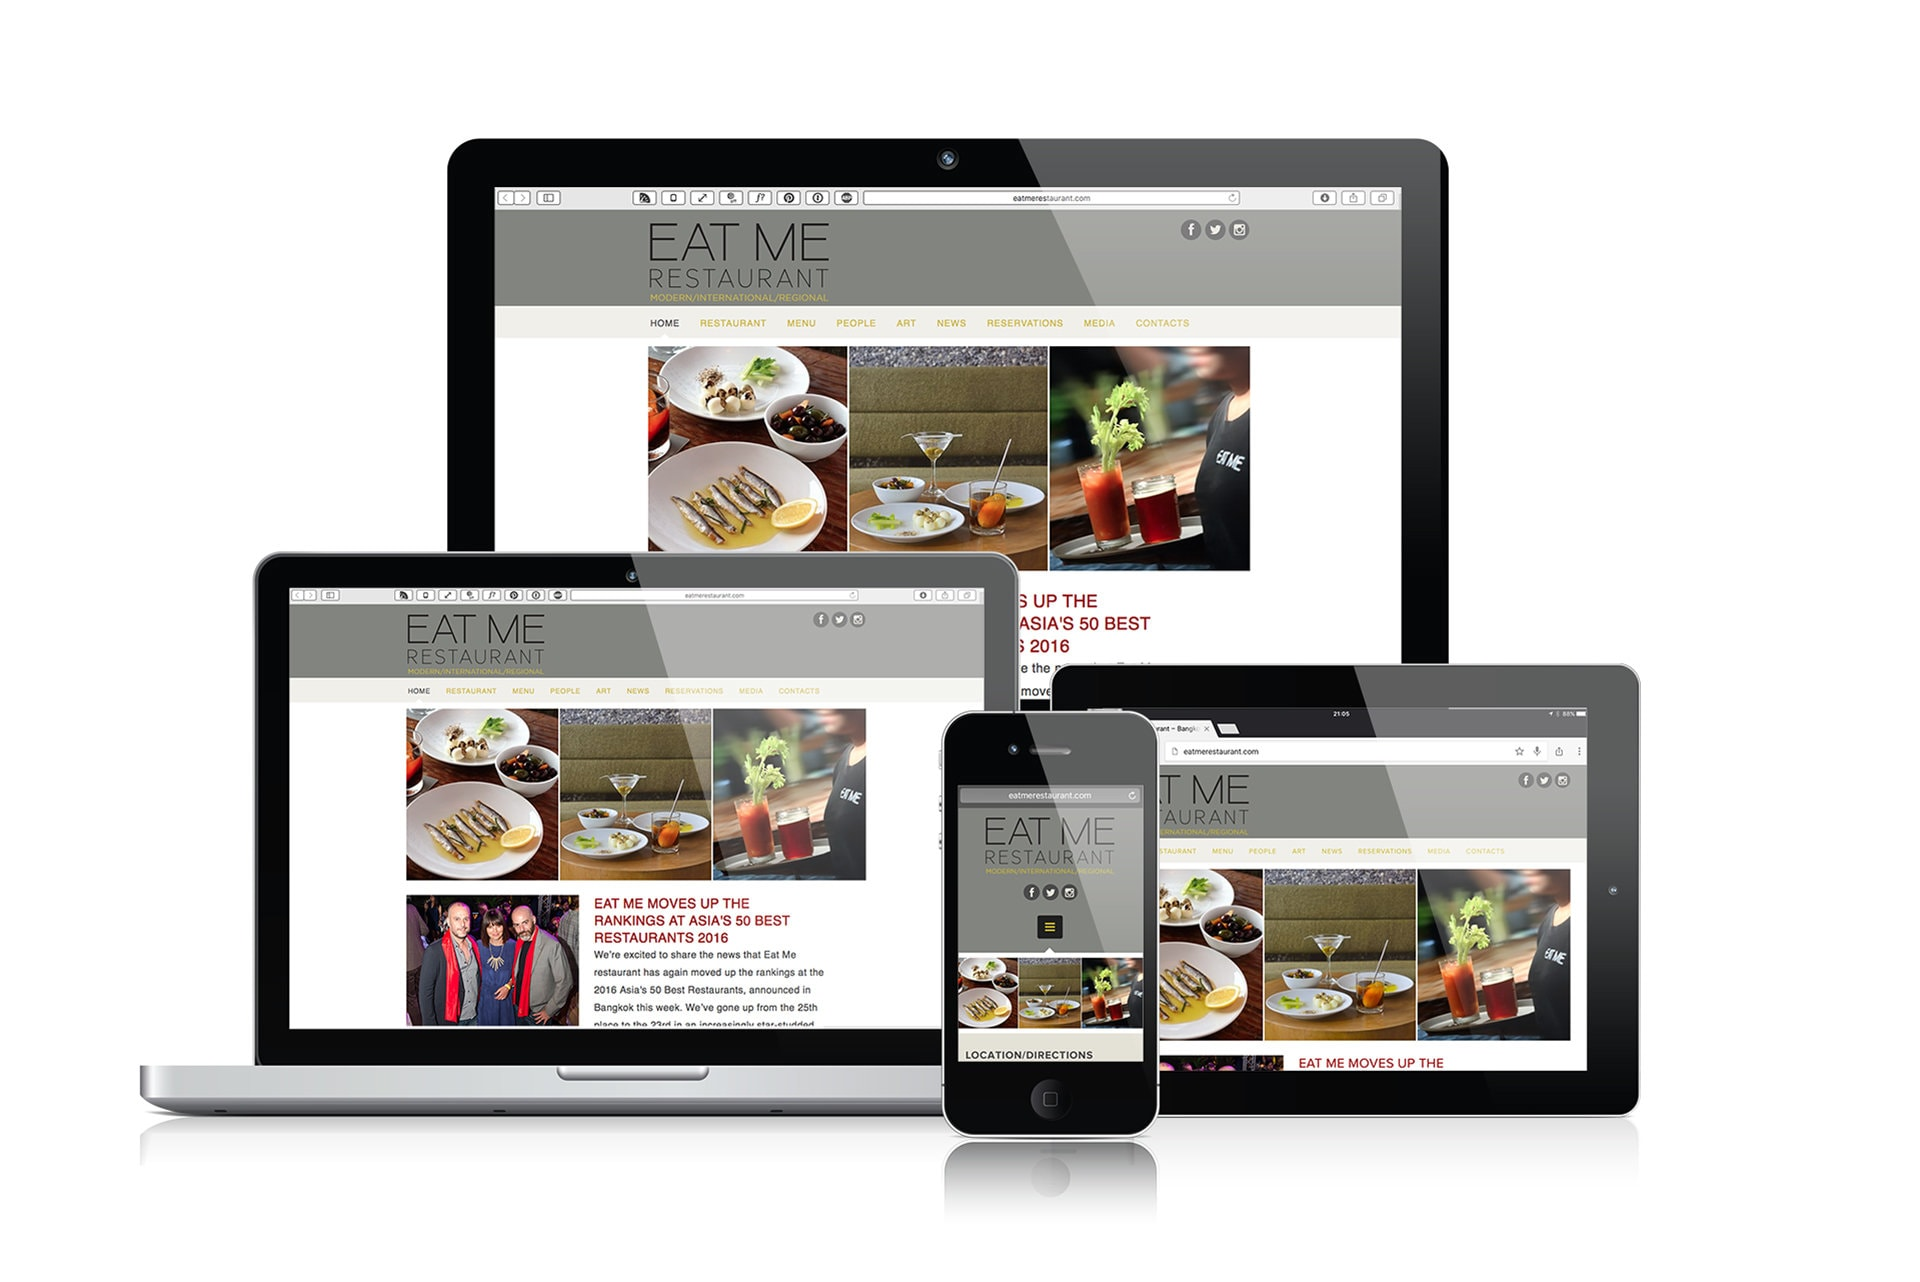 Eat Me Restaurant, Bangkok. Web Design & Development by Grantourismo Media, a Full Service Digital Media Agency.